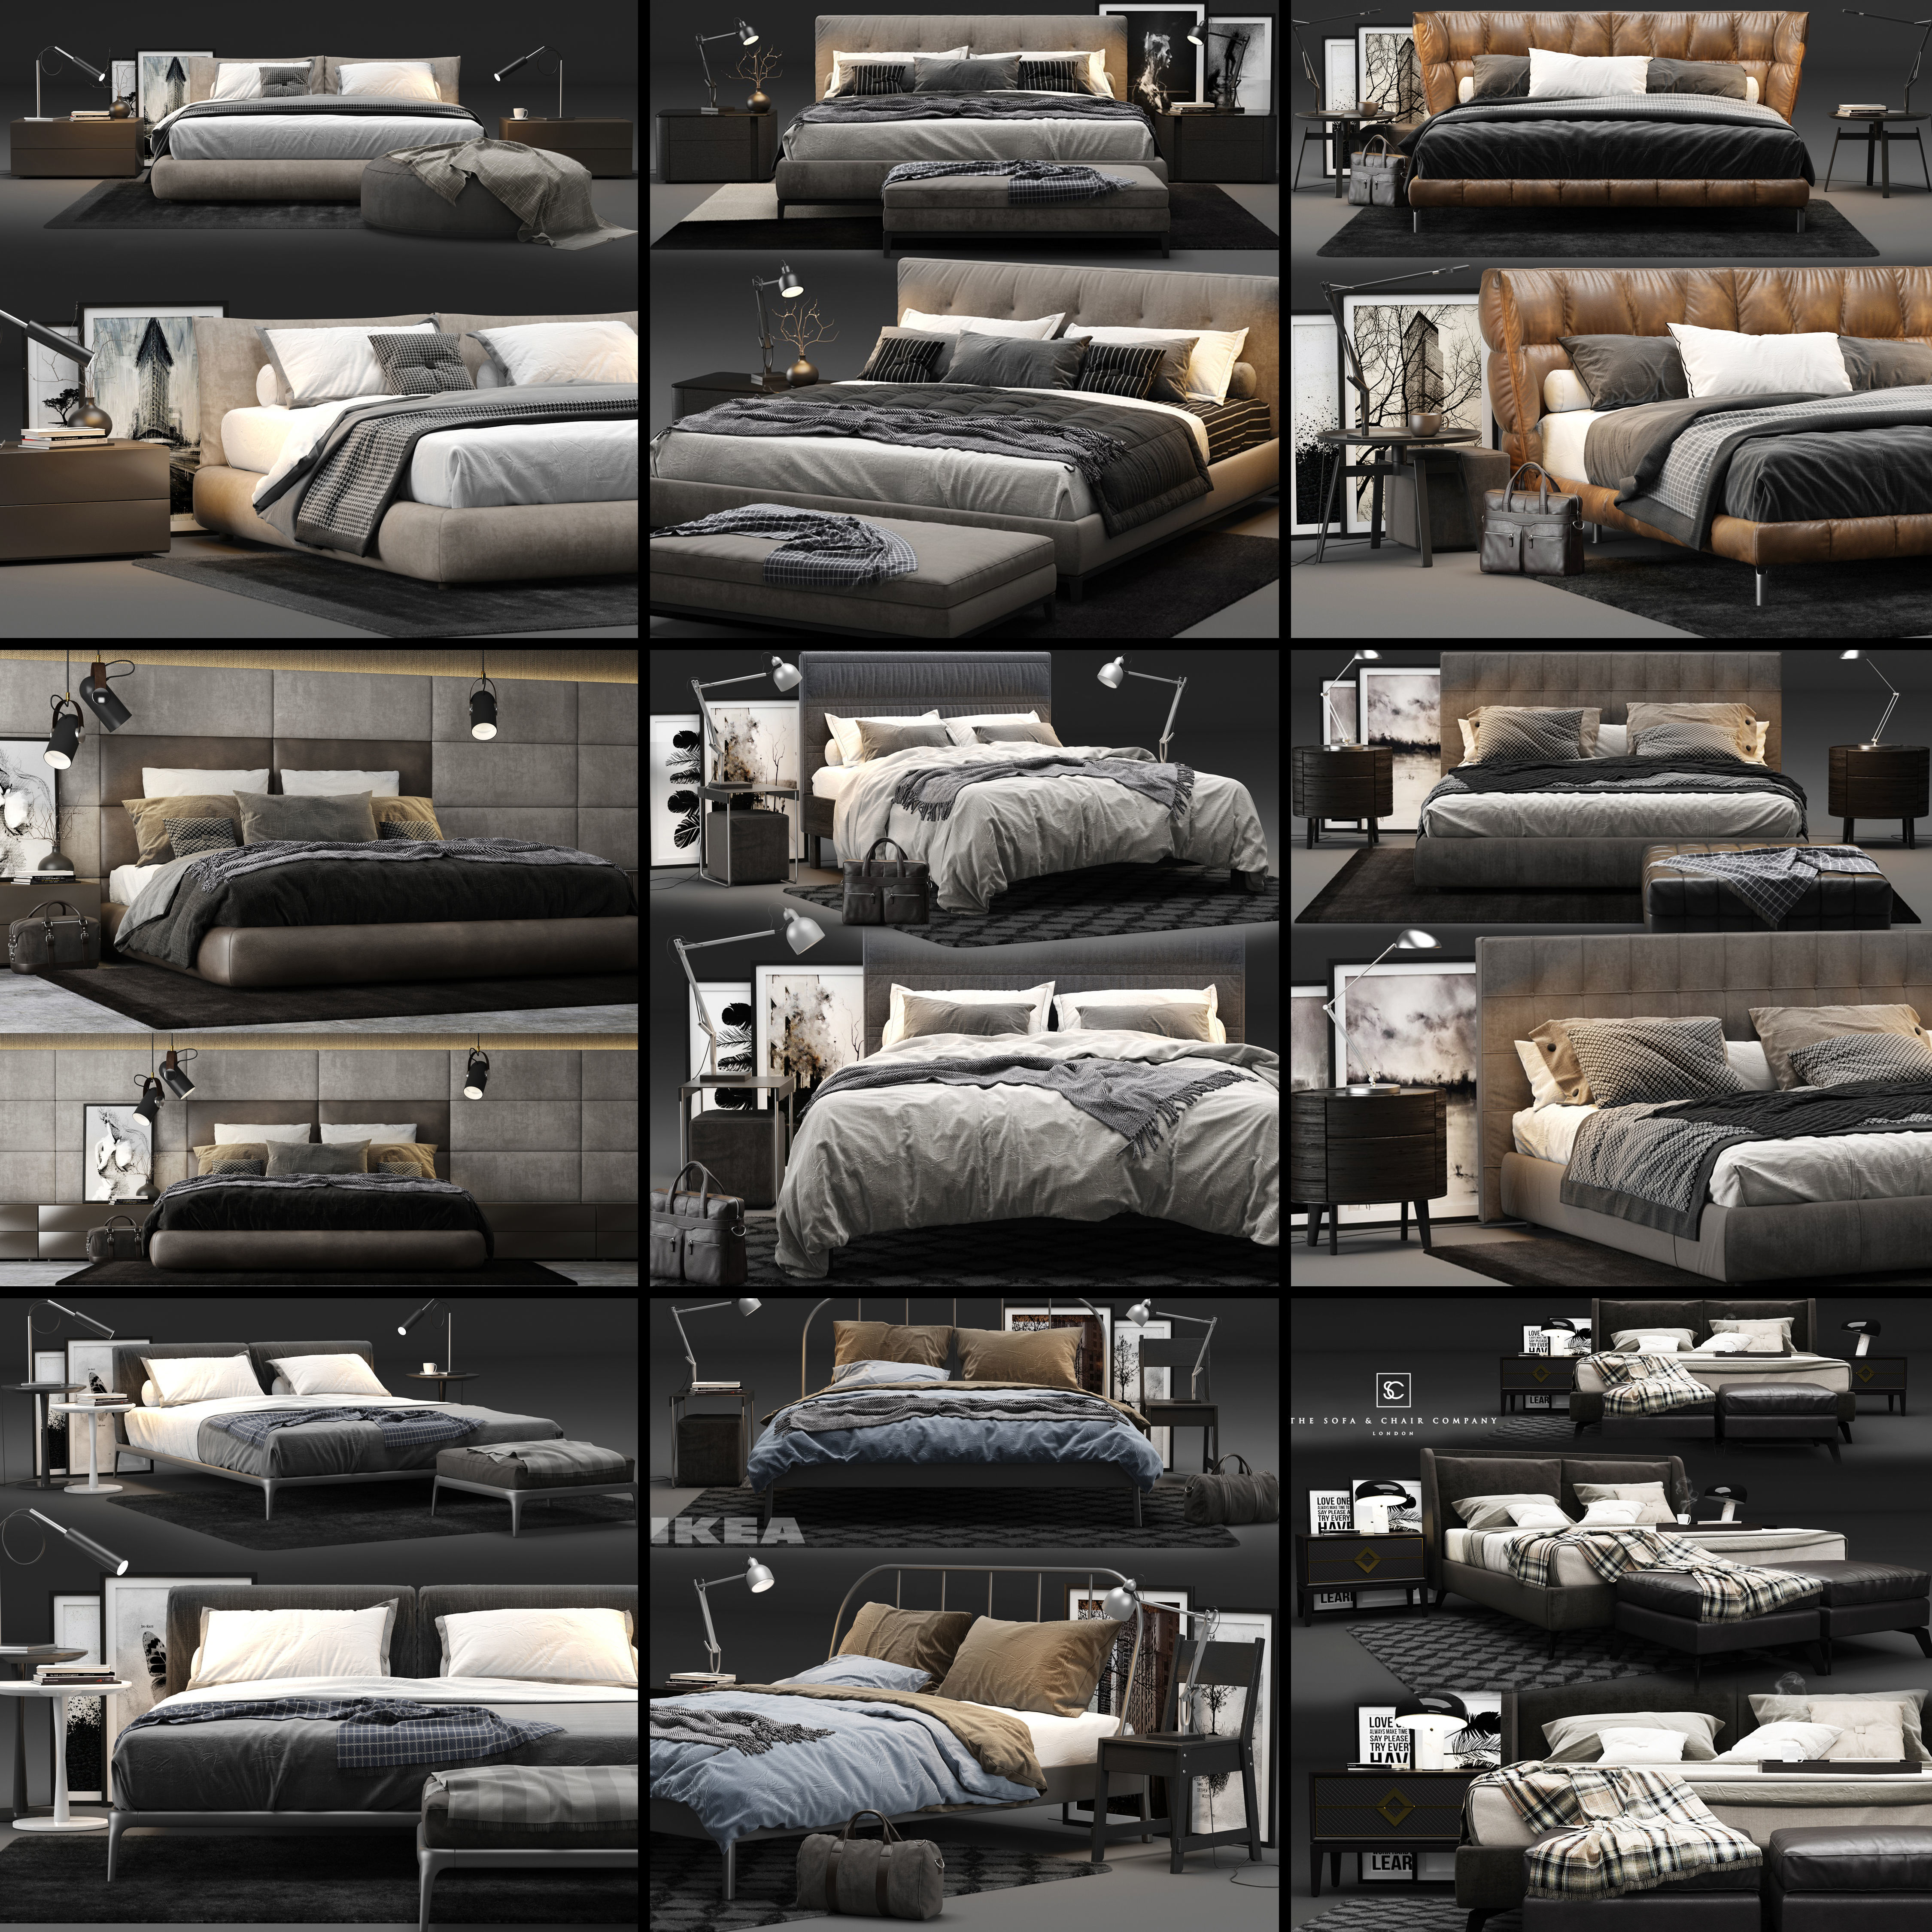 Bed Colection 03 - 10 Items